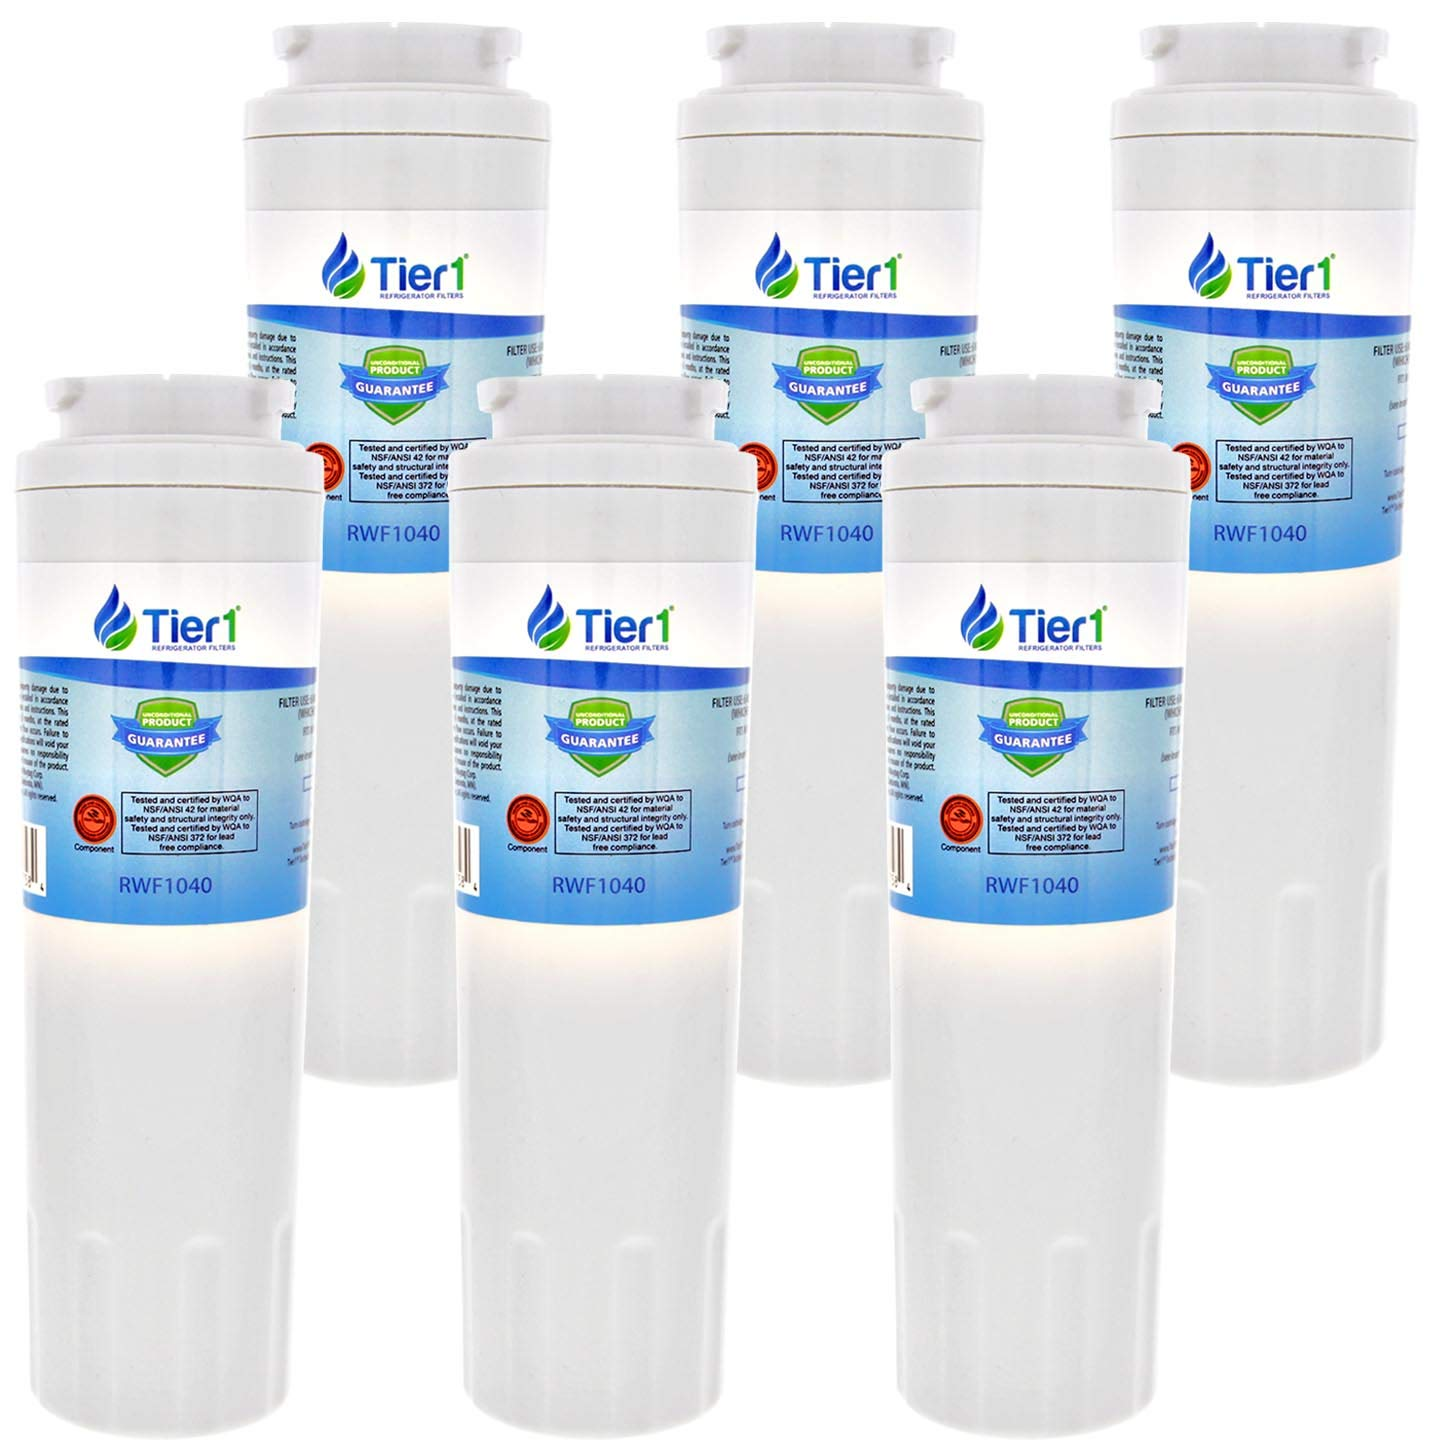 Tier1 Replacement for Maytag UKF8001, EDR4RXD1, Whirlpool 4396395, PUR, Jenn-Air, Puriclean II, 469006, 469005 Refrigerator Water Filter 6 Pack